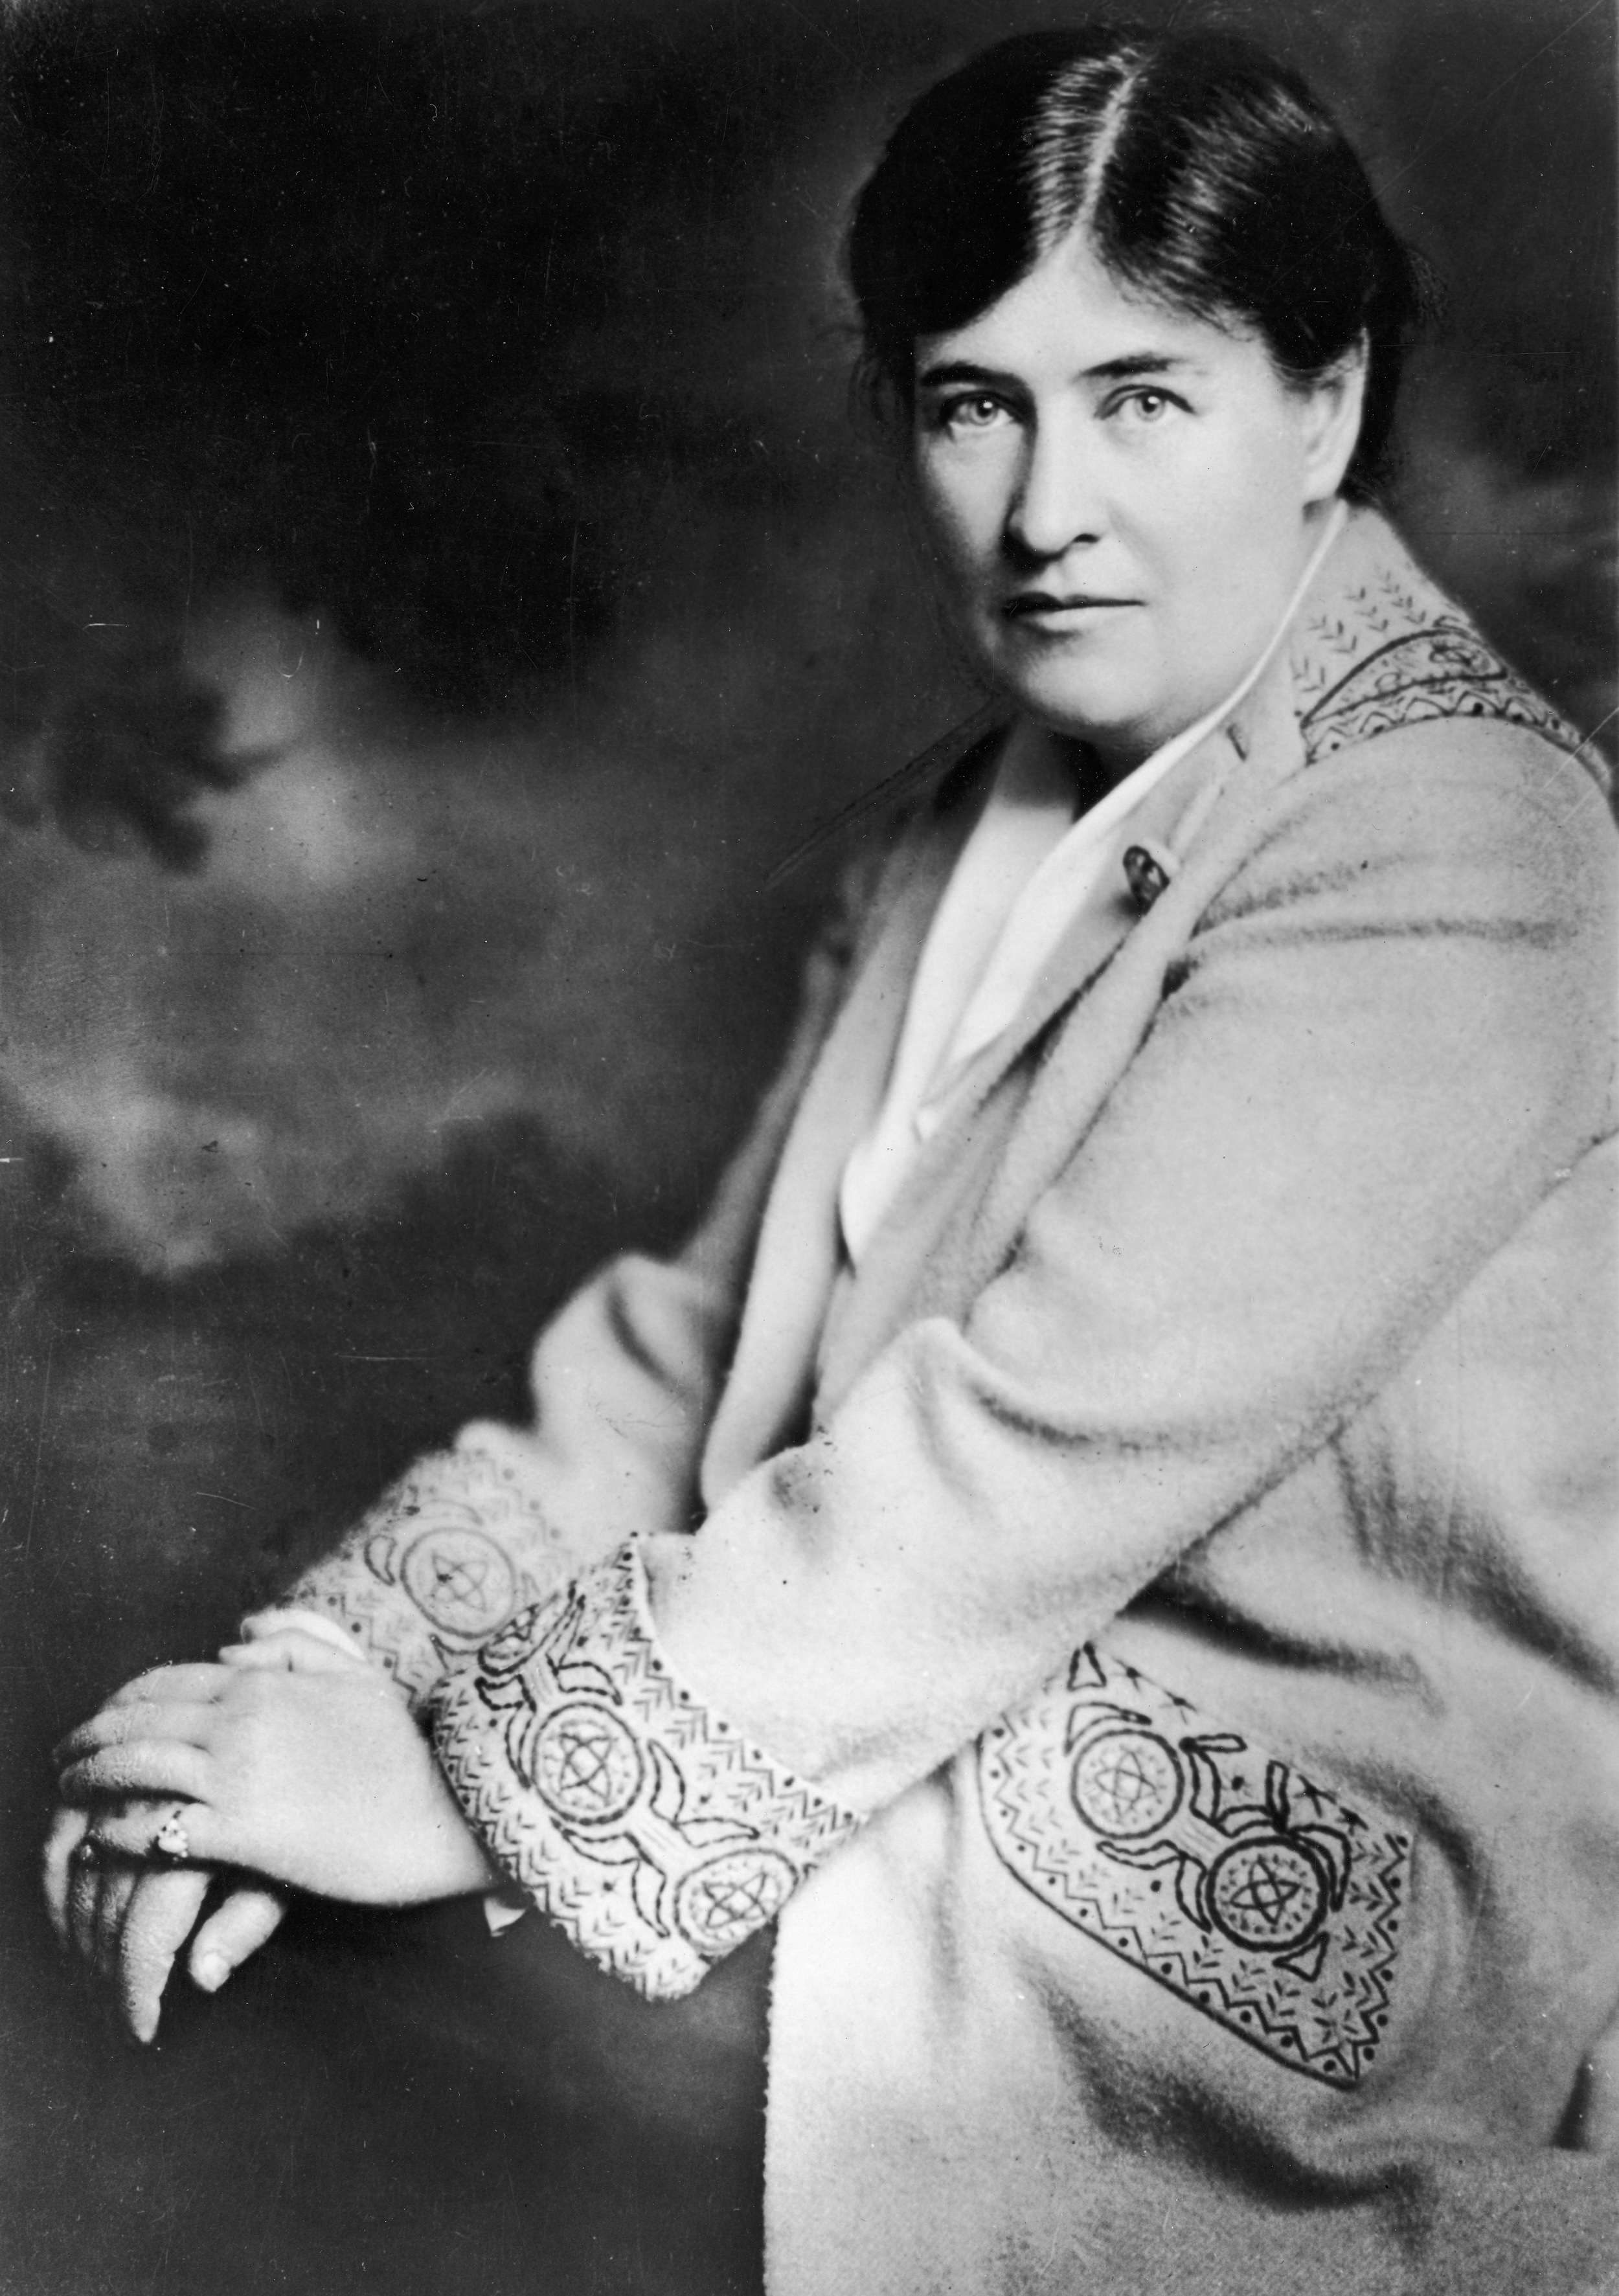 Portrait of Willa Cather, circa 1900s. (Photo by Fotosearch/Getty Images).